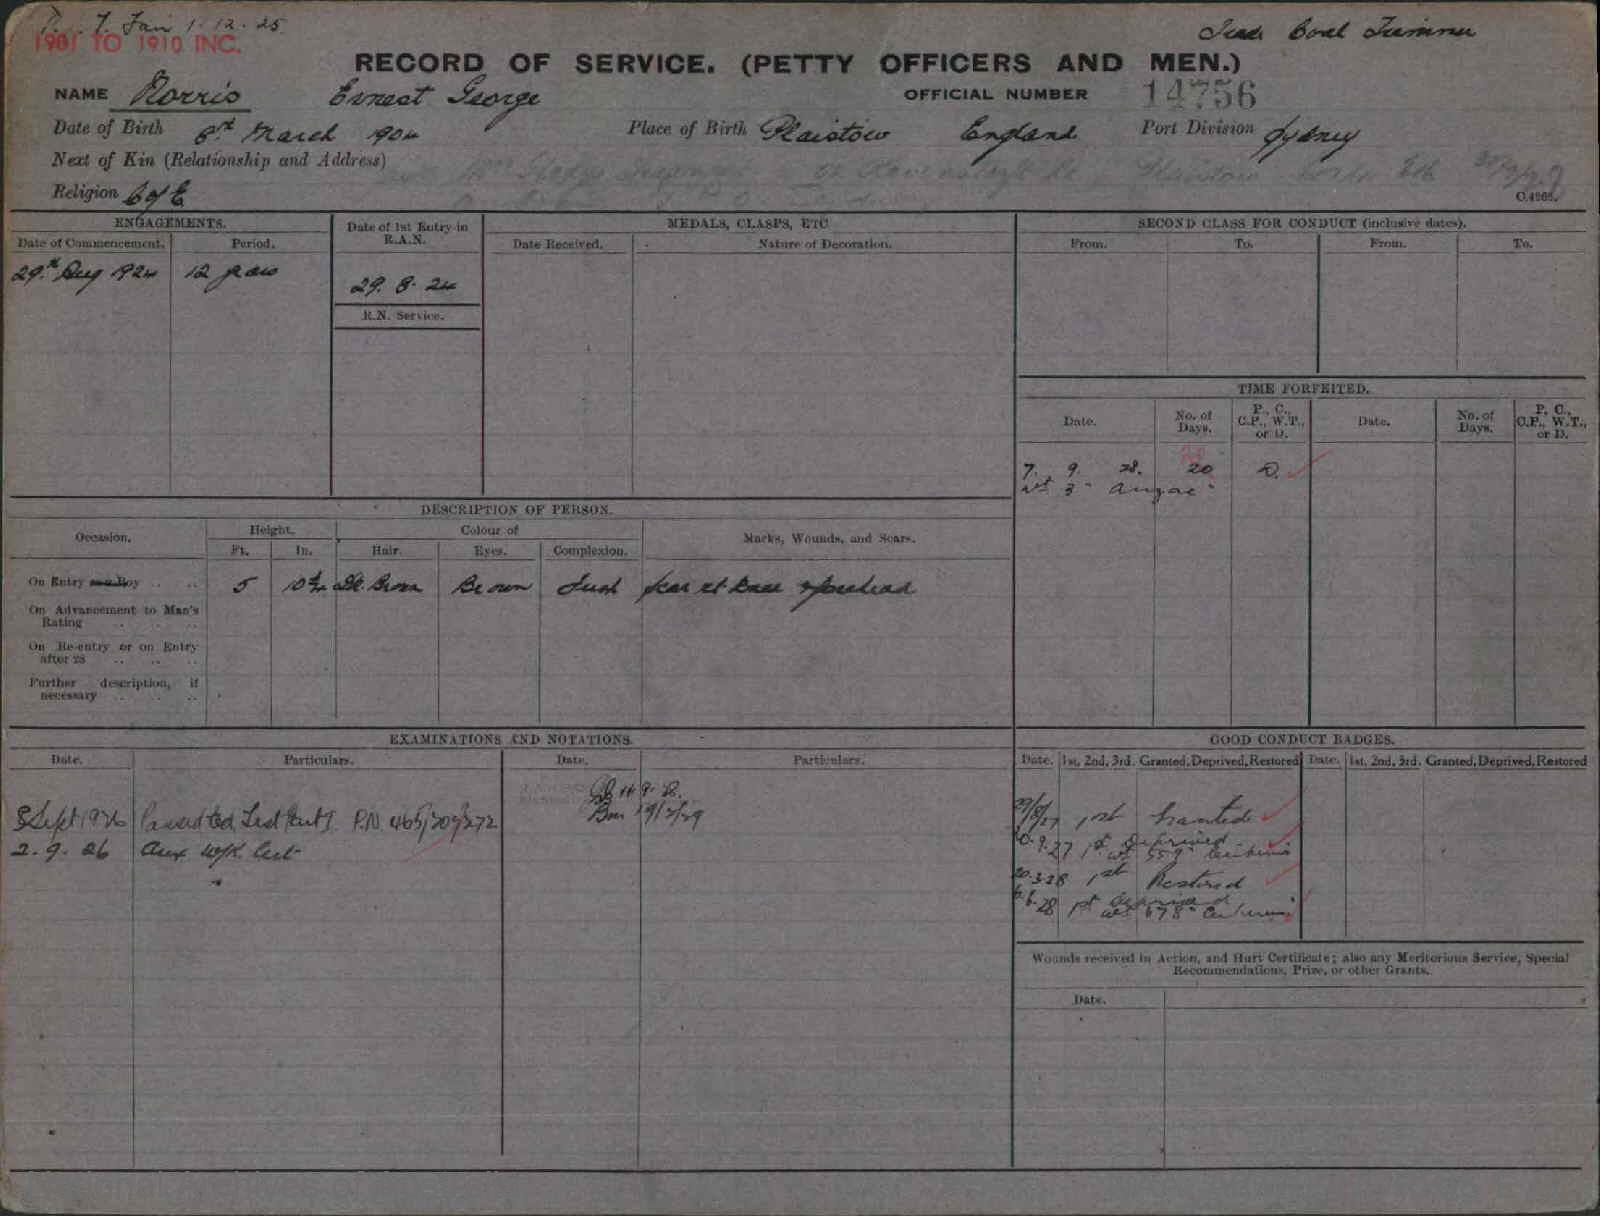 NORRIS ERNEST GEORGE : Service Number - 14756 : Date of birth - 08 Mar 1904 : Place of birth - PLAISTOW ENGLAND : Place of enlistment - SYDNEY : Next of Kin - GLADYS